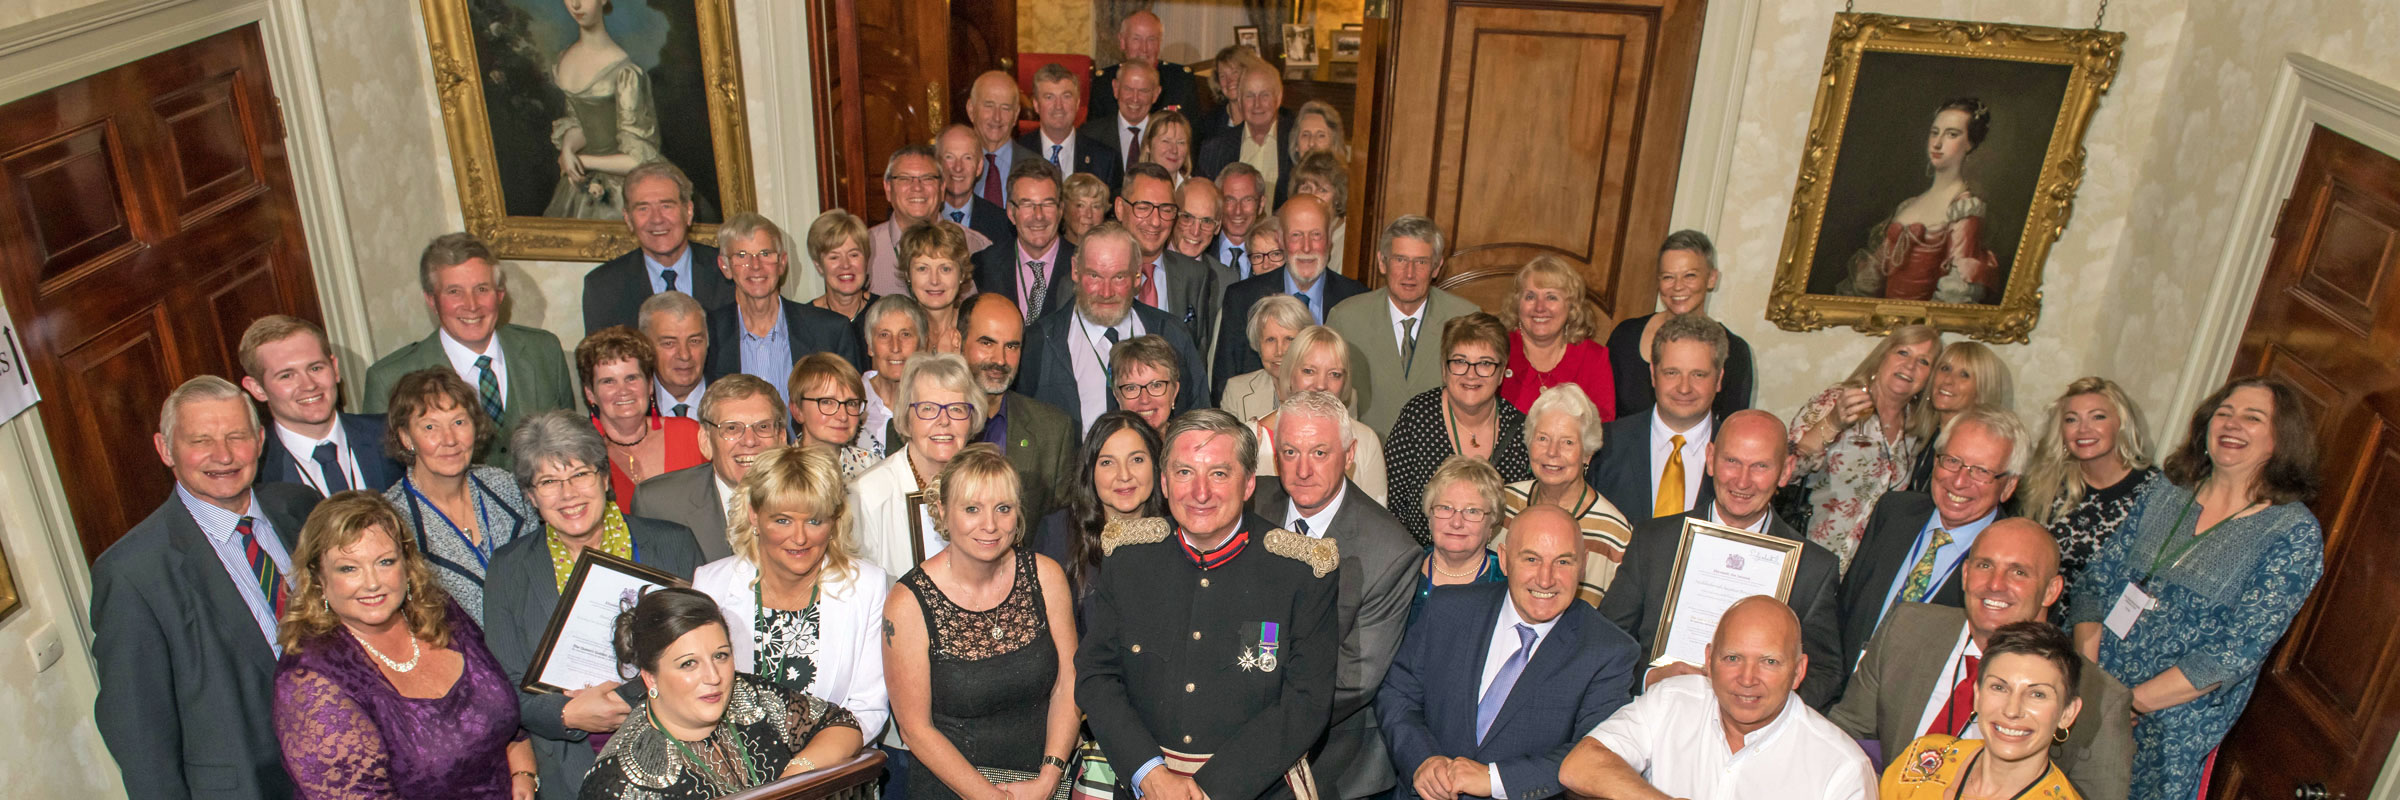 Queen's Award for Voluntary Service 2018